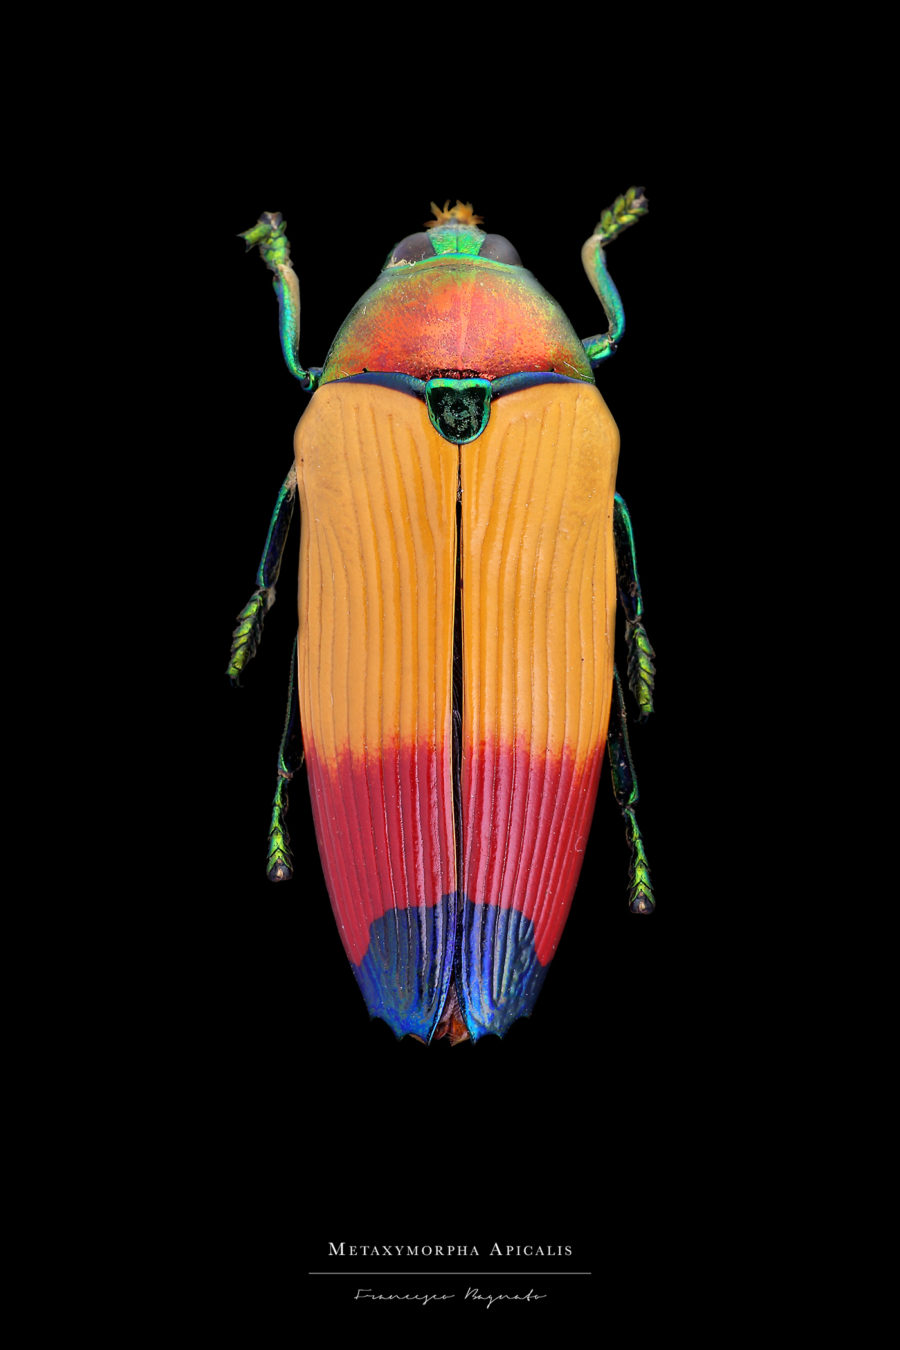 Stunning Pictures of Colorful Insects Beautiful Pictures of Colorful Insects